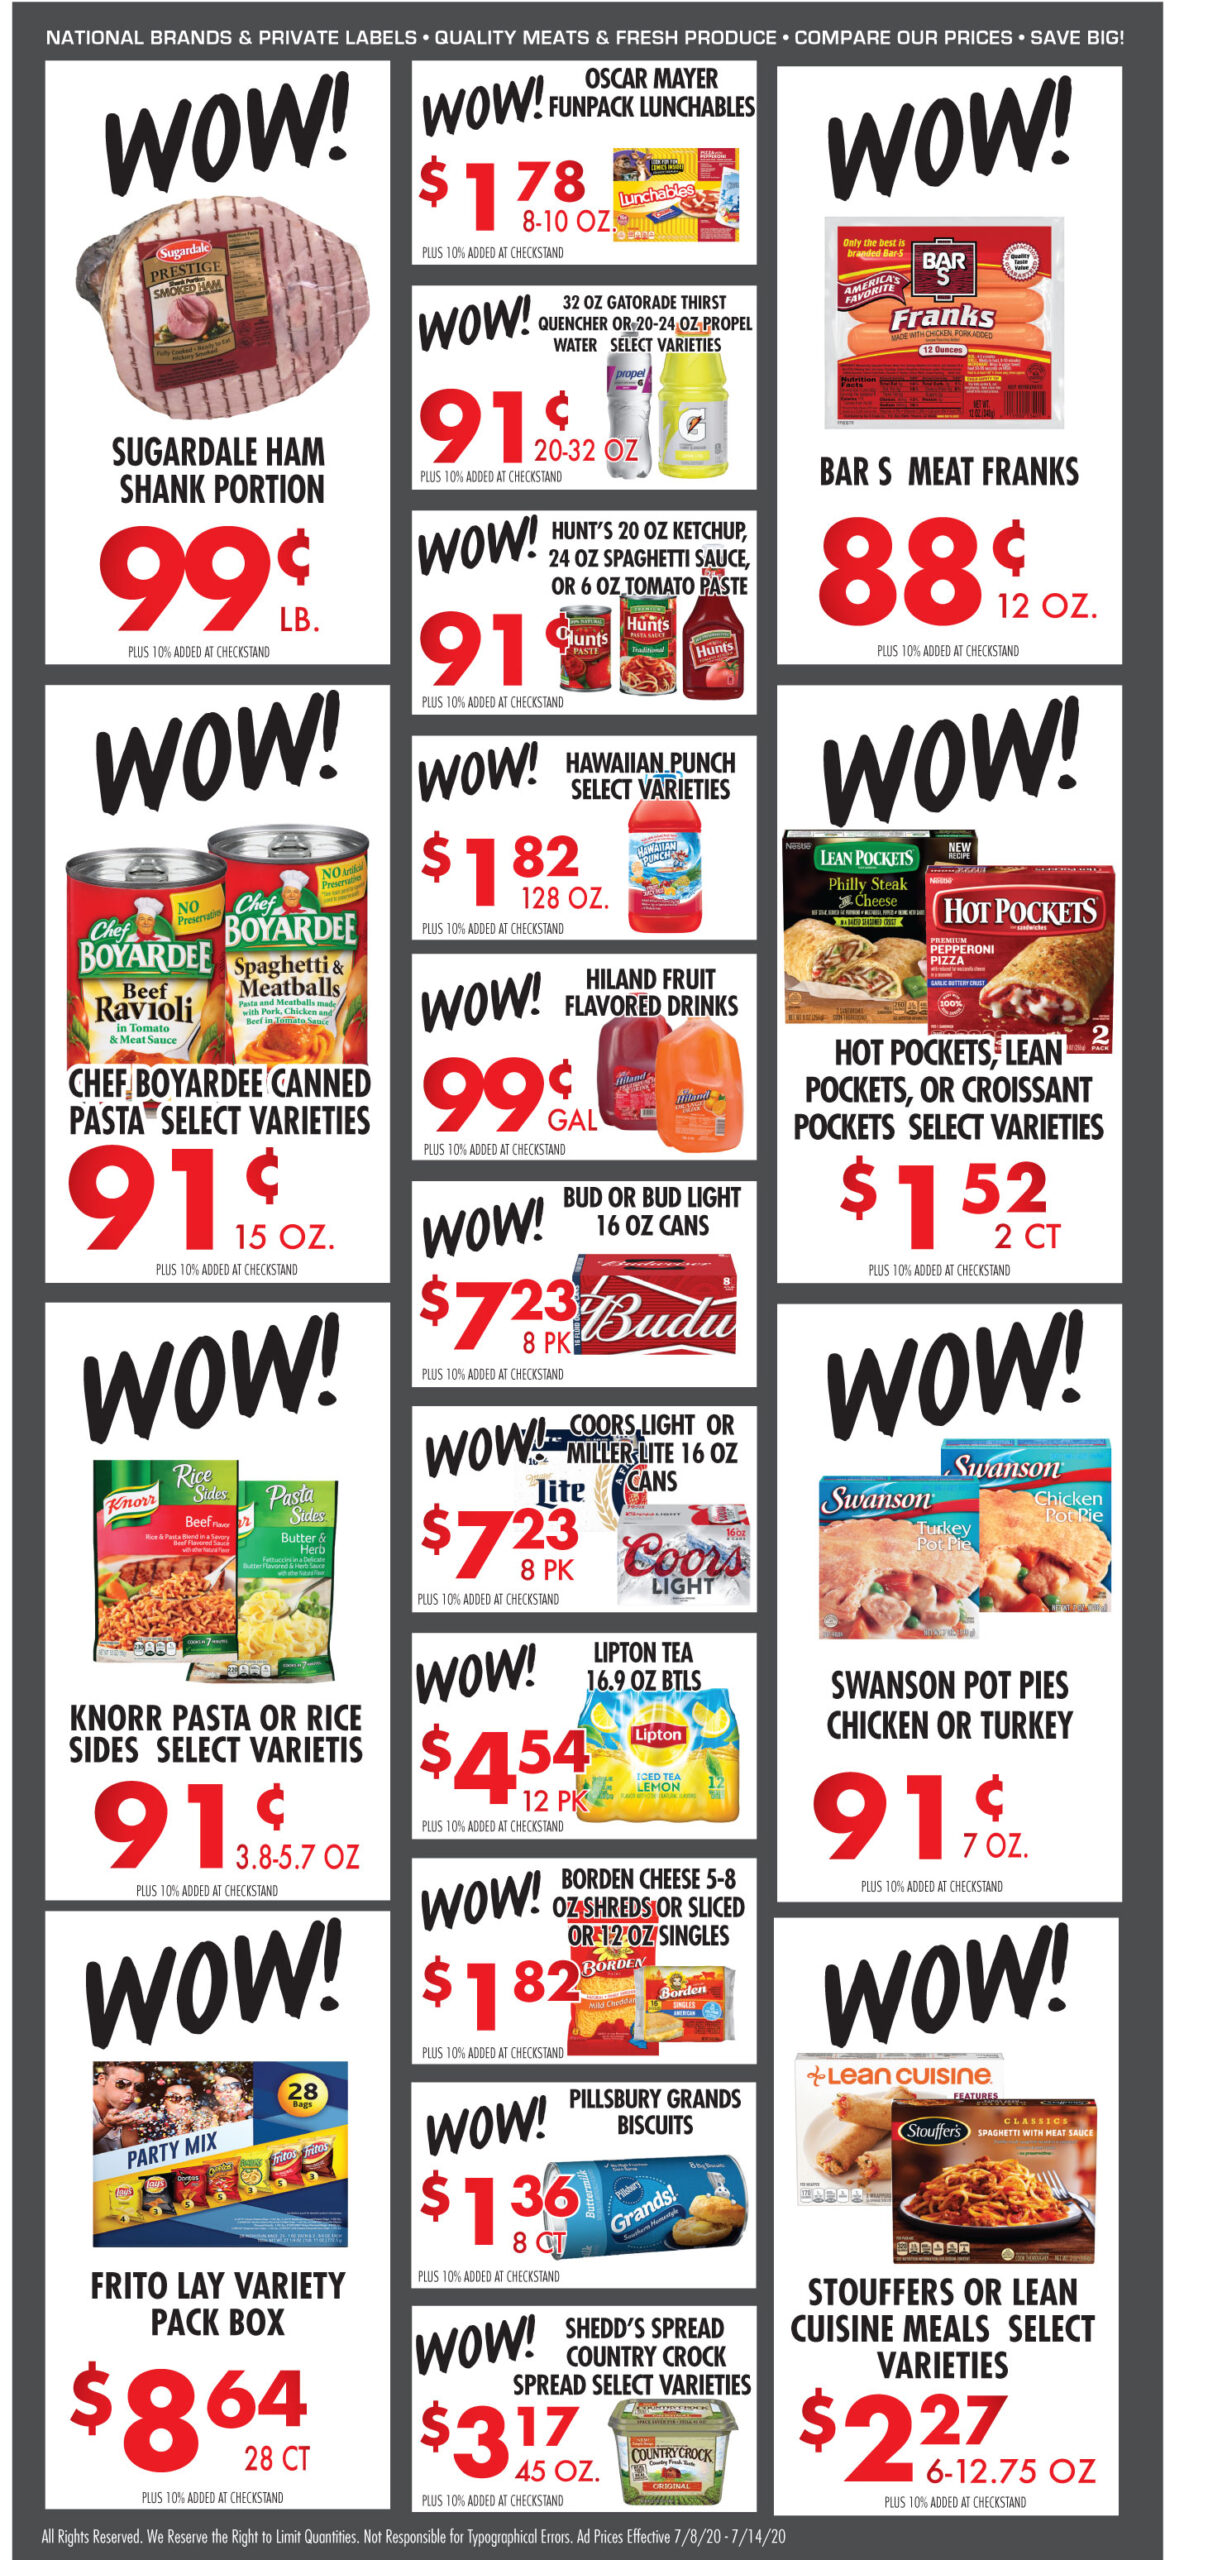 Cox Cash Saver specials for week of 7-8-20